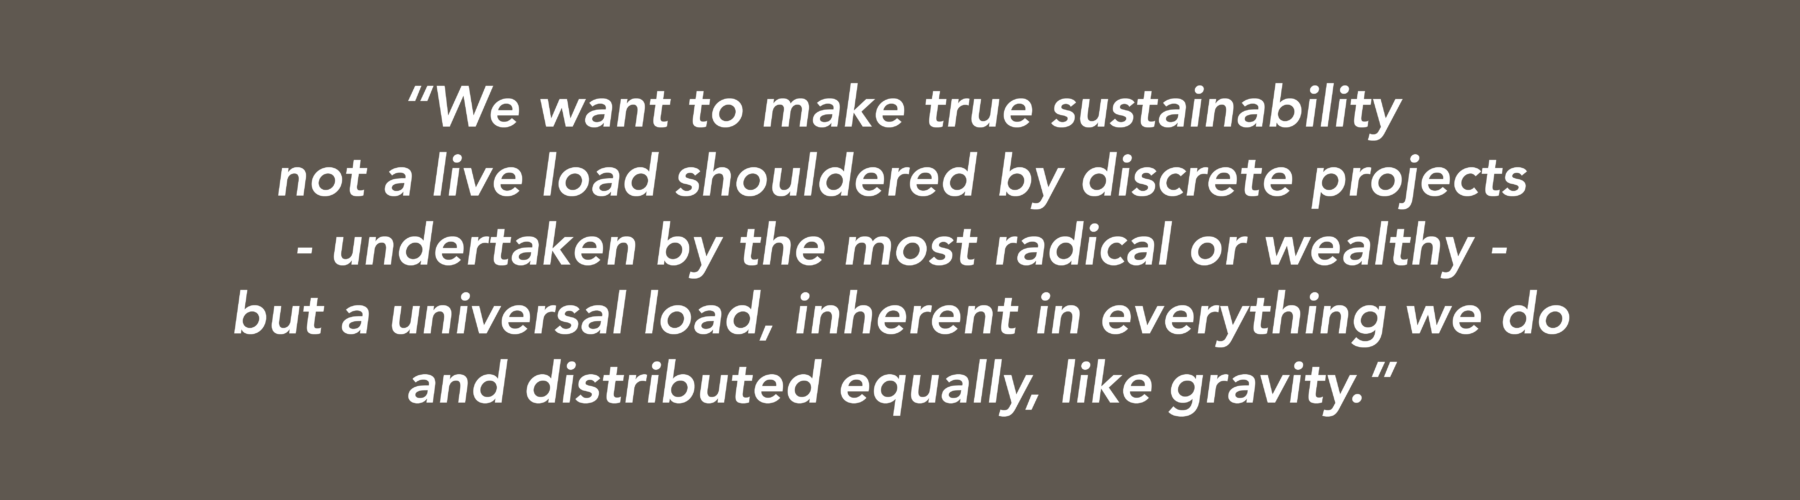 Sarah-Wigglesworth-Architects Sustainable Housing Pull quote